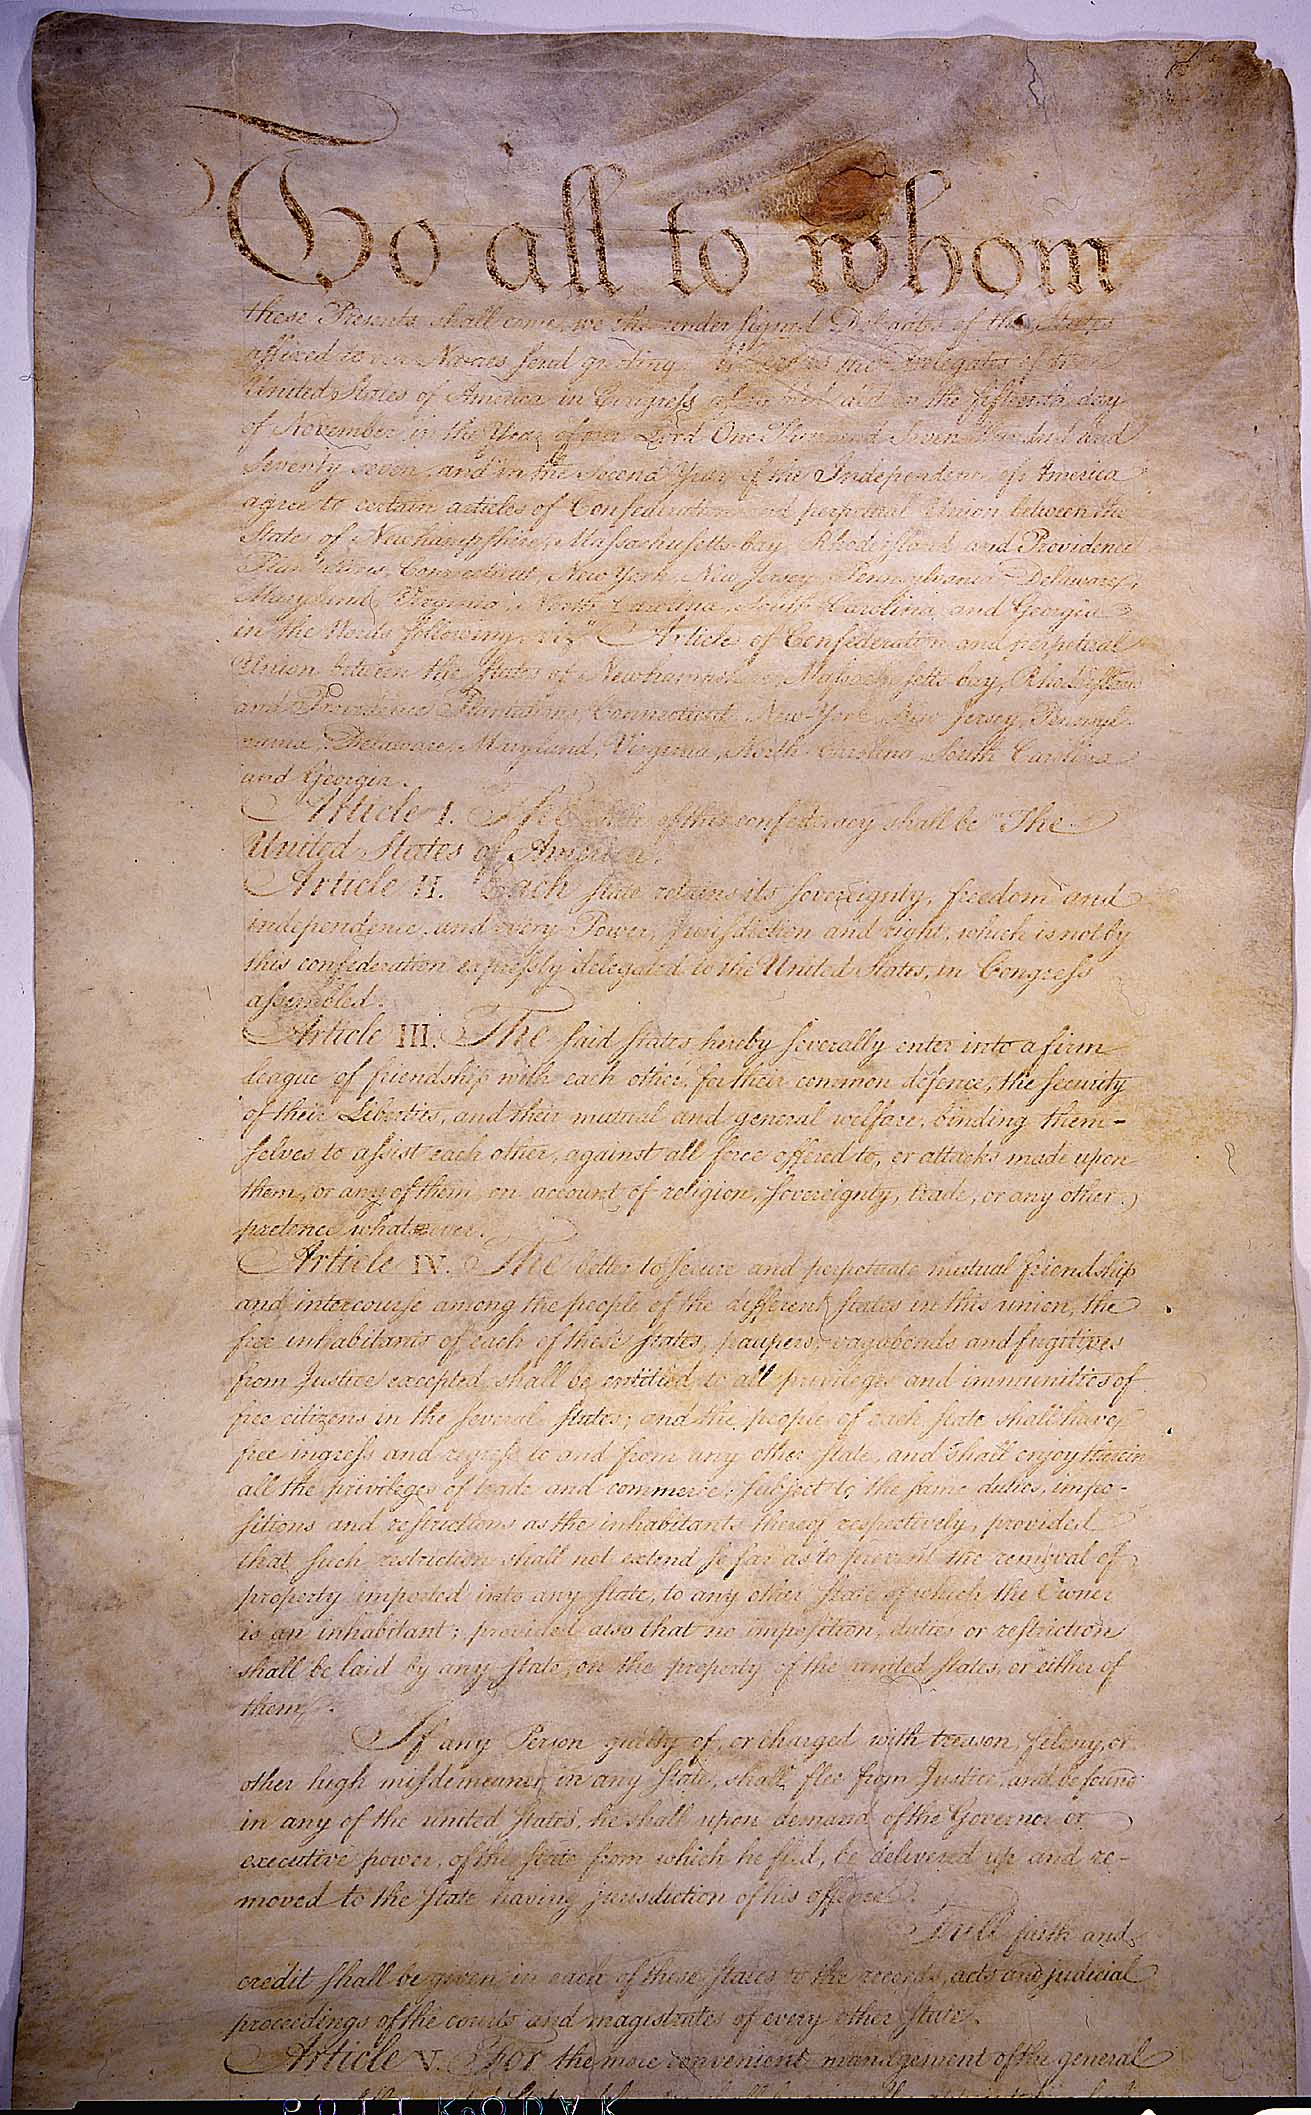 This is a copy of the Declaration of Independence